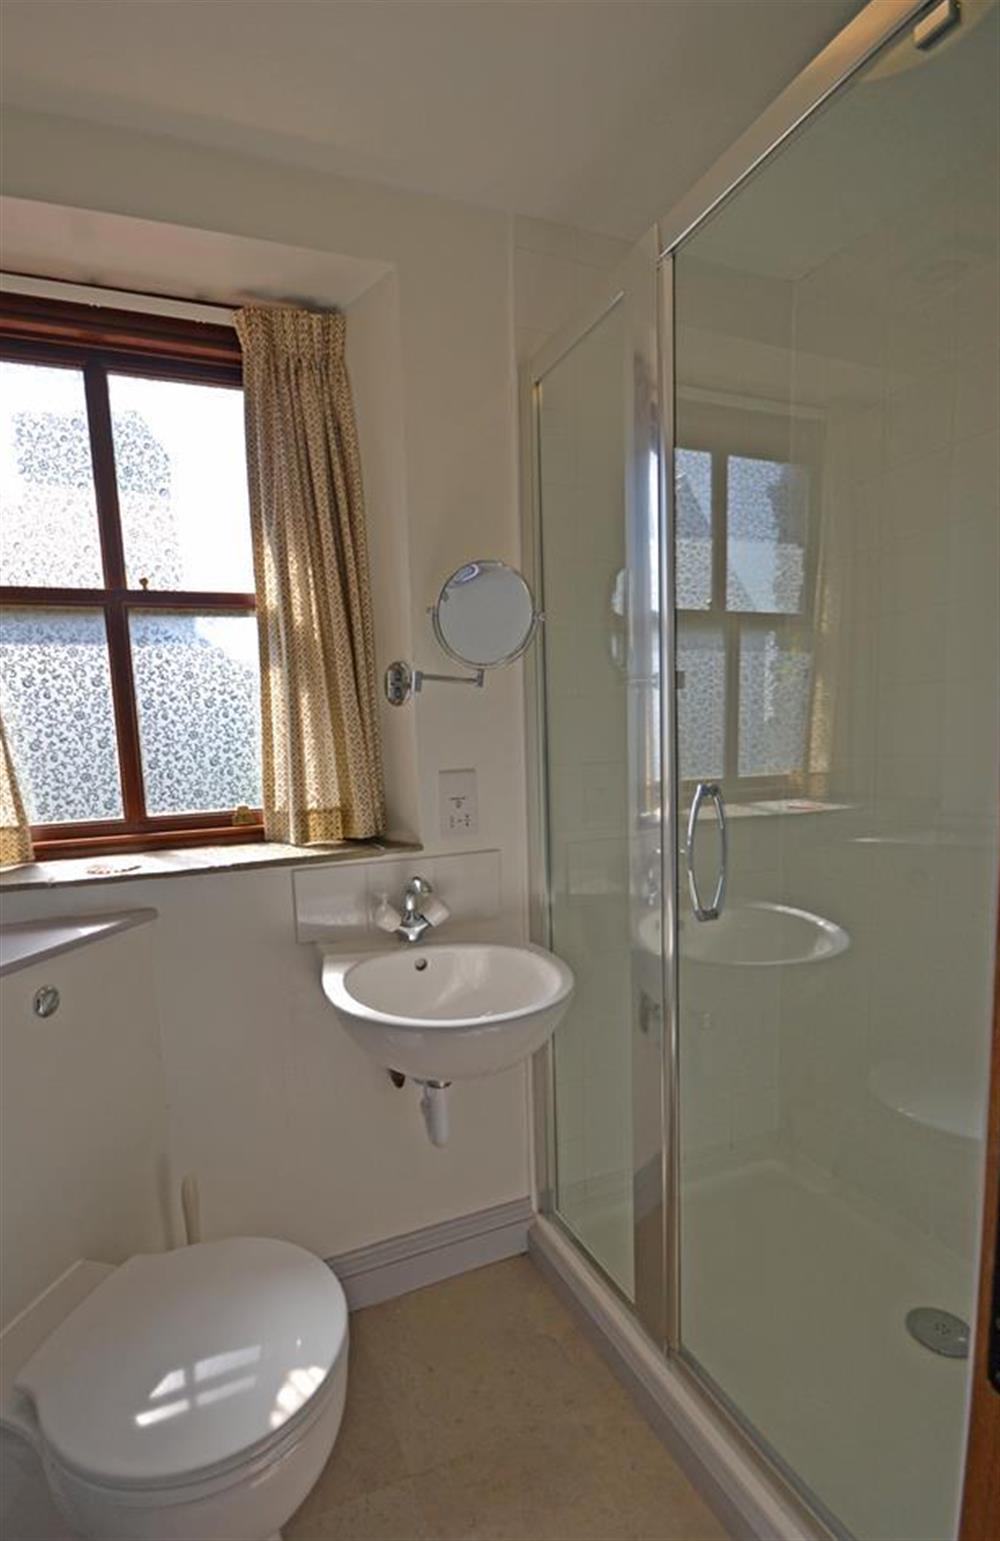 The first floor shower room at Solstice, Blackawton